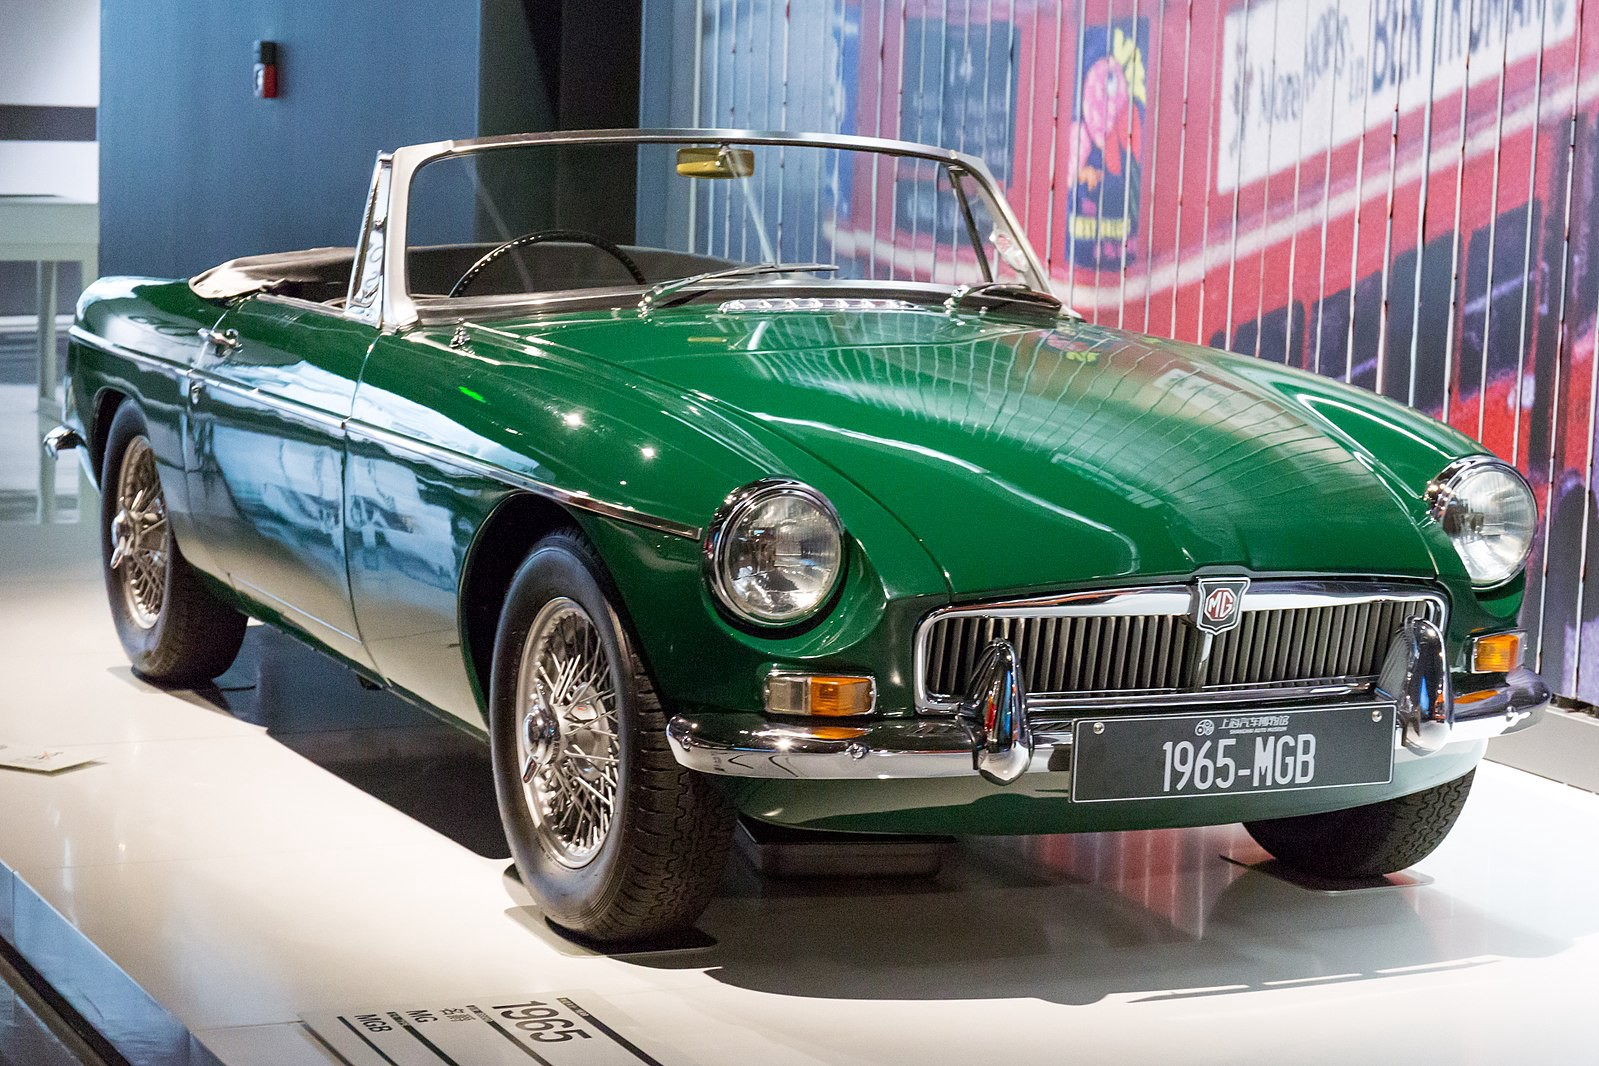 Mosky's Musings: An Early MGB Faces Off against a Datsun